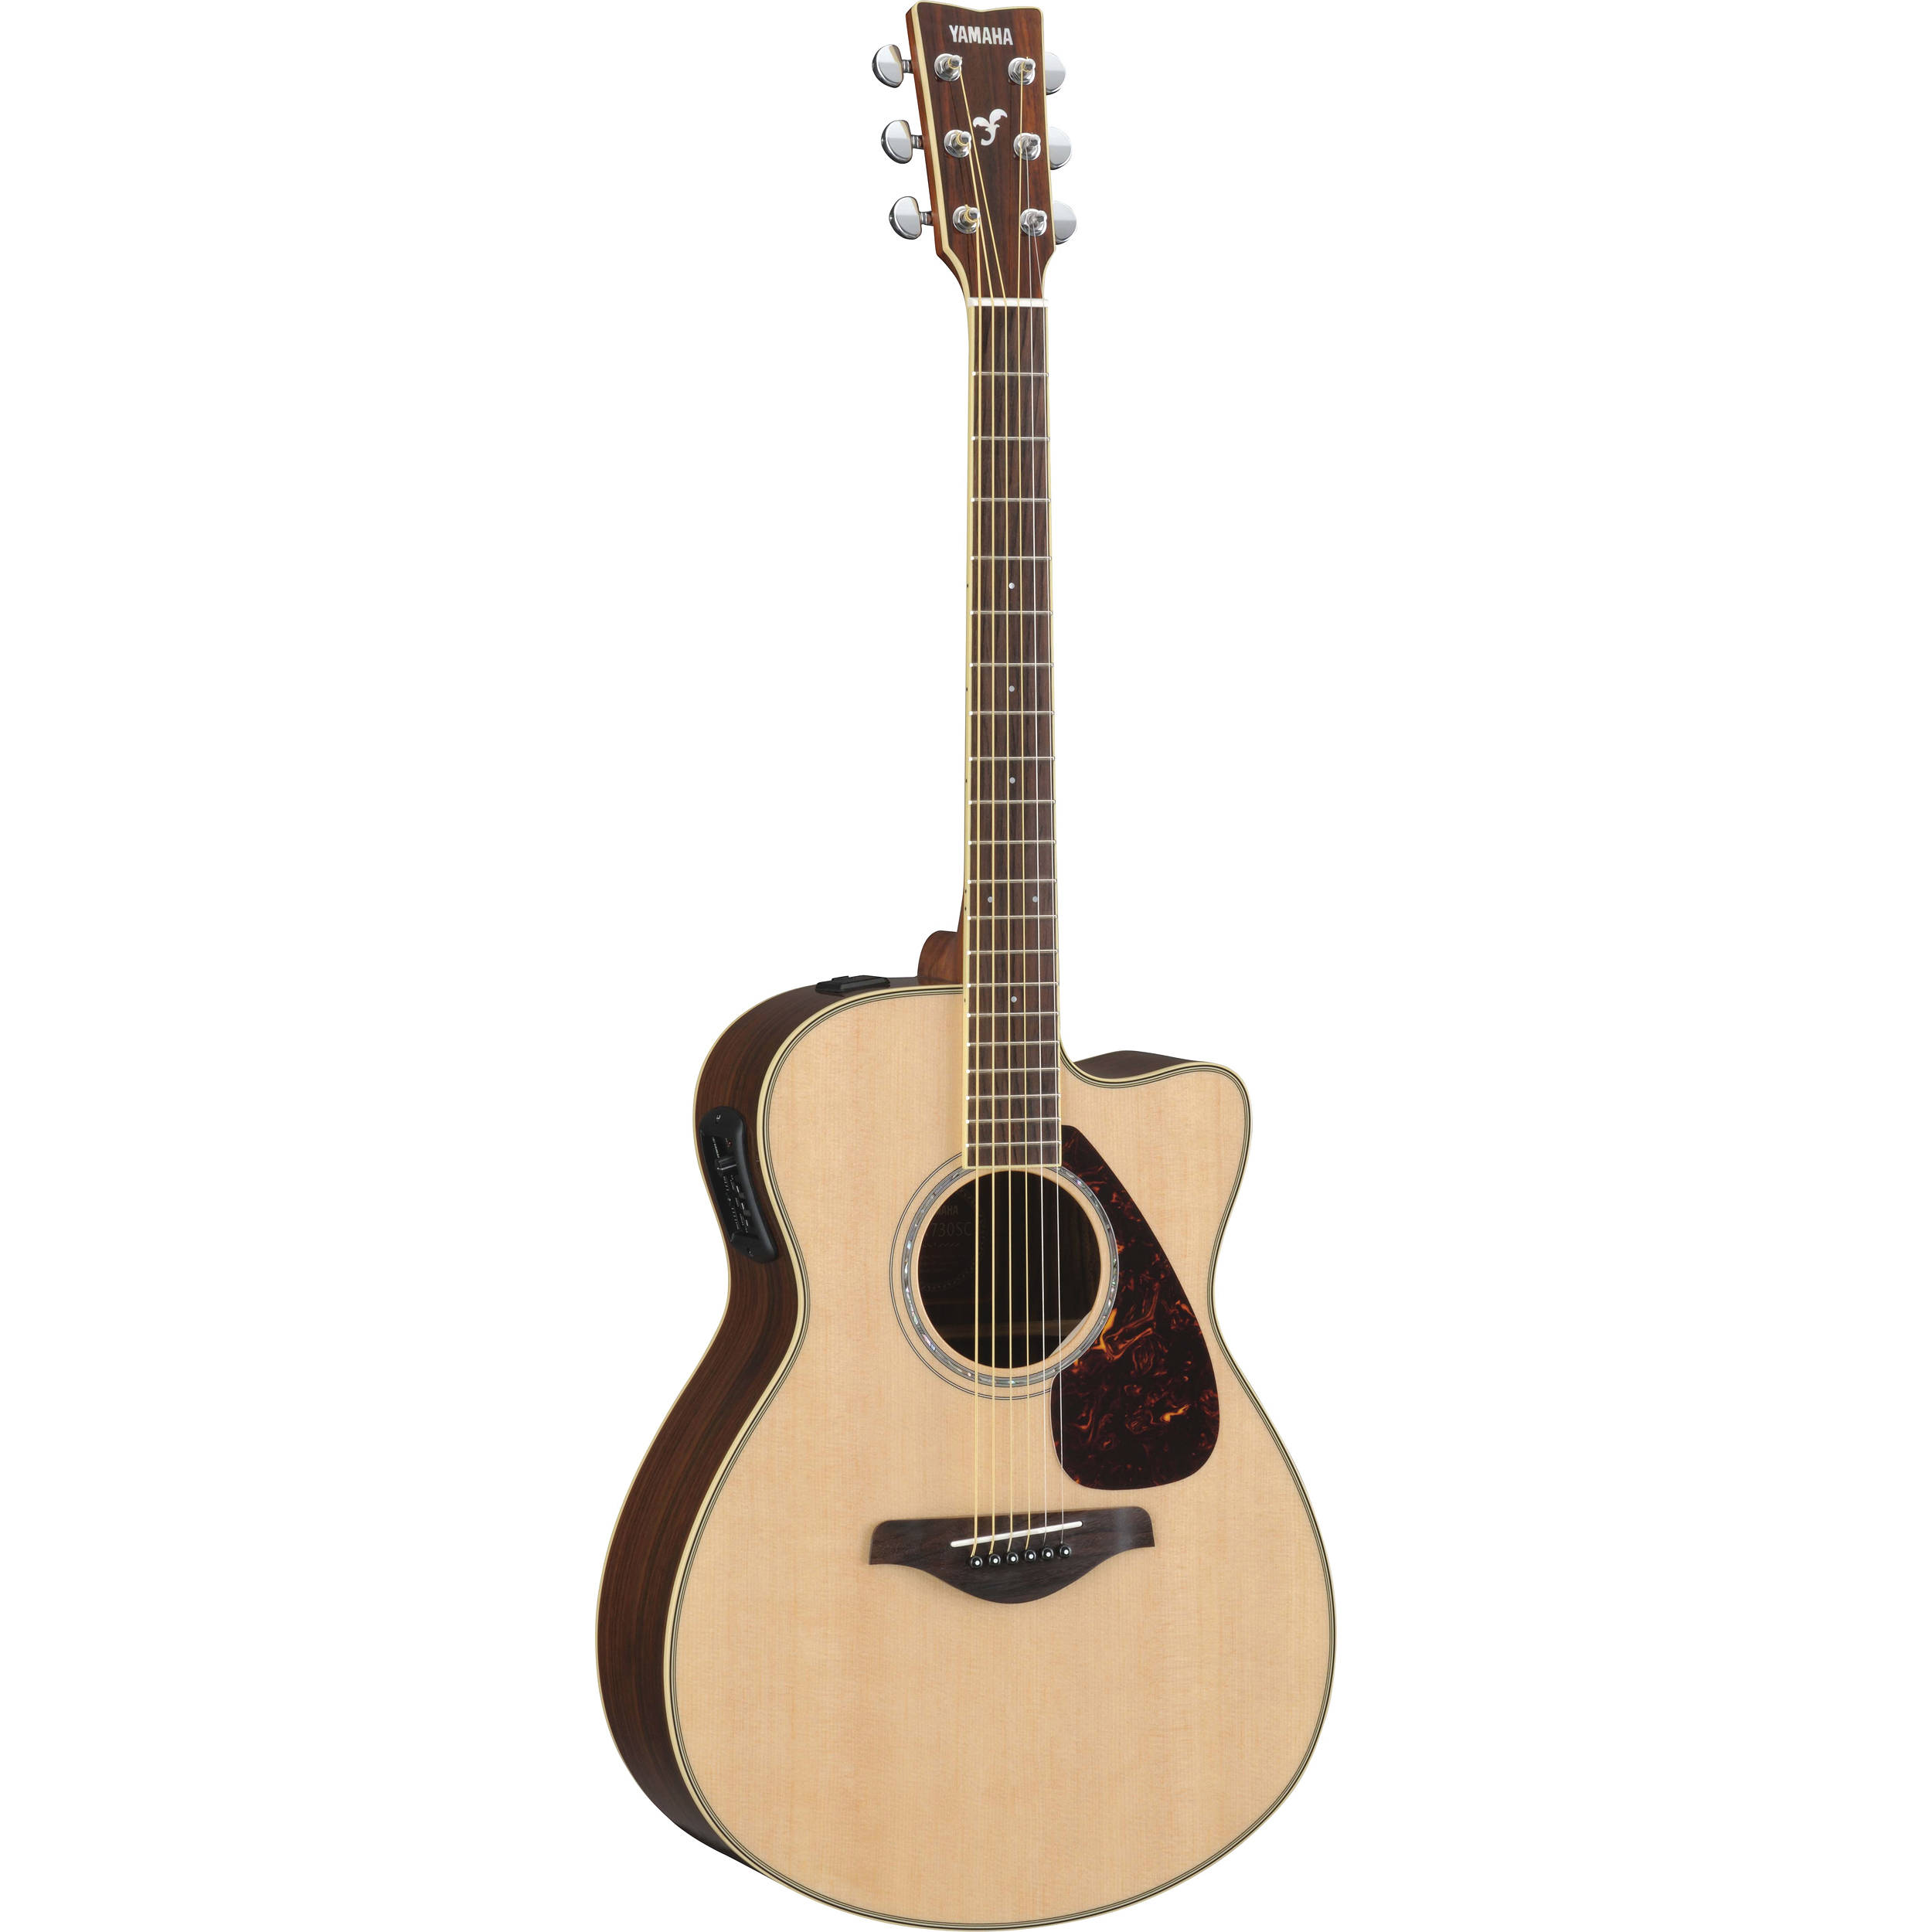 yamaha fsx730sc small body acoustic electric guitar fsx730sc b h. Black Bedroom Furniture Sets. Home Design Ideas